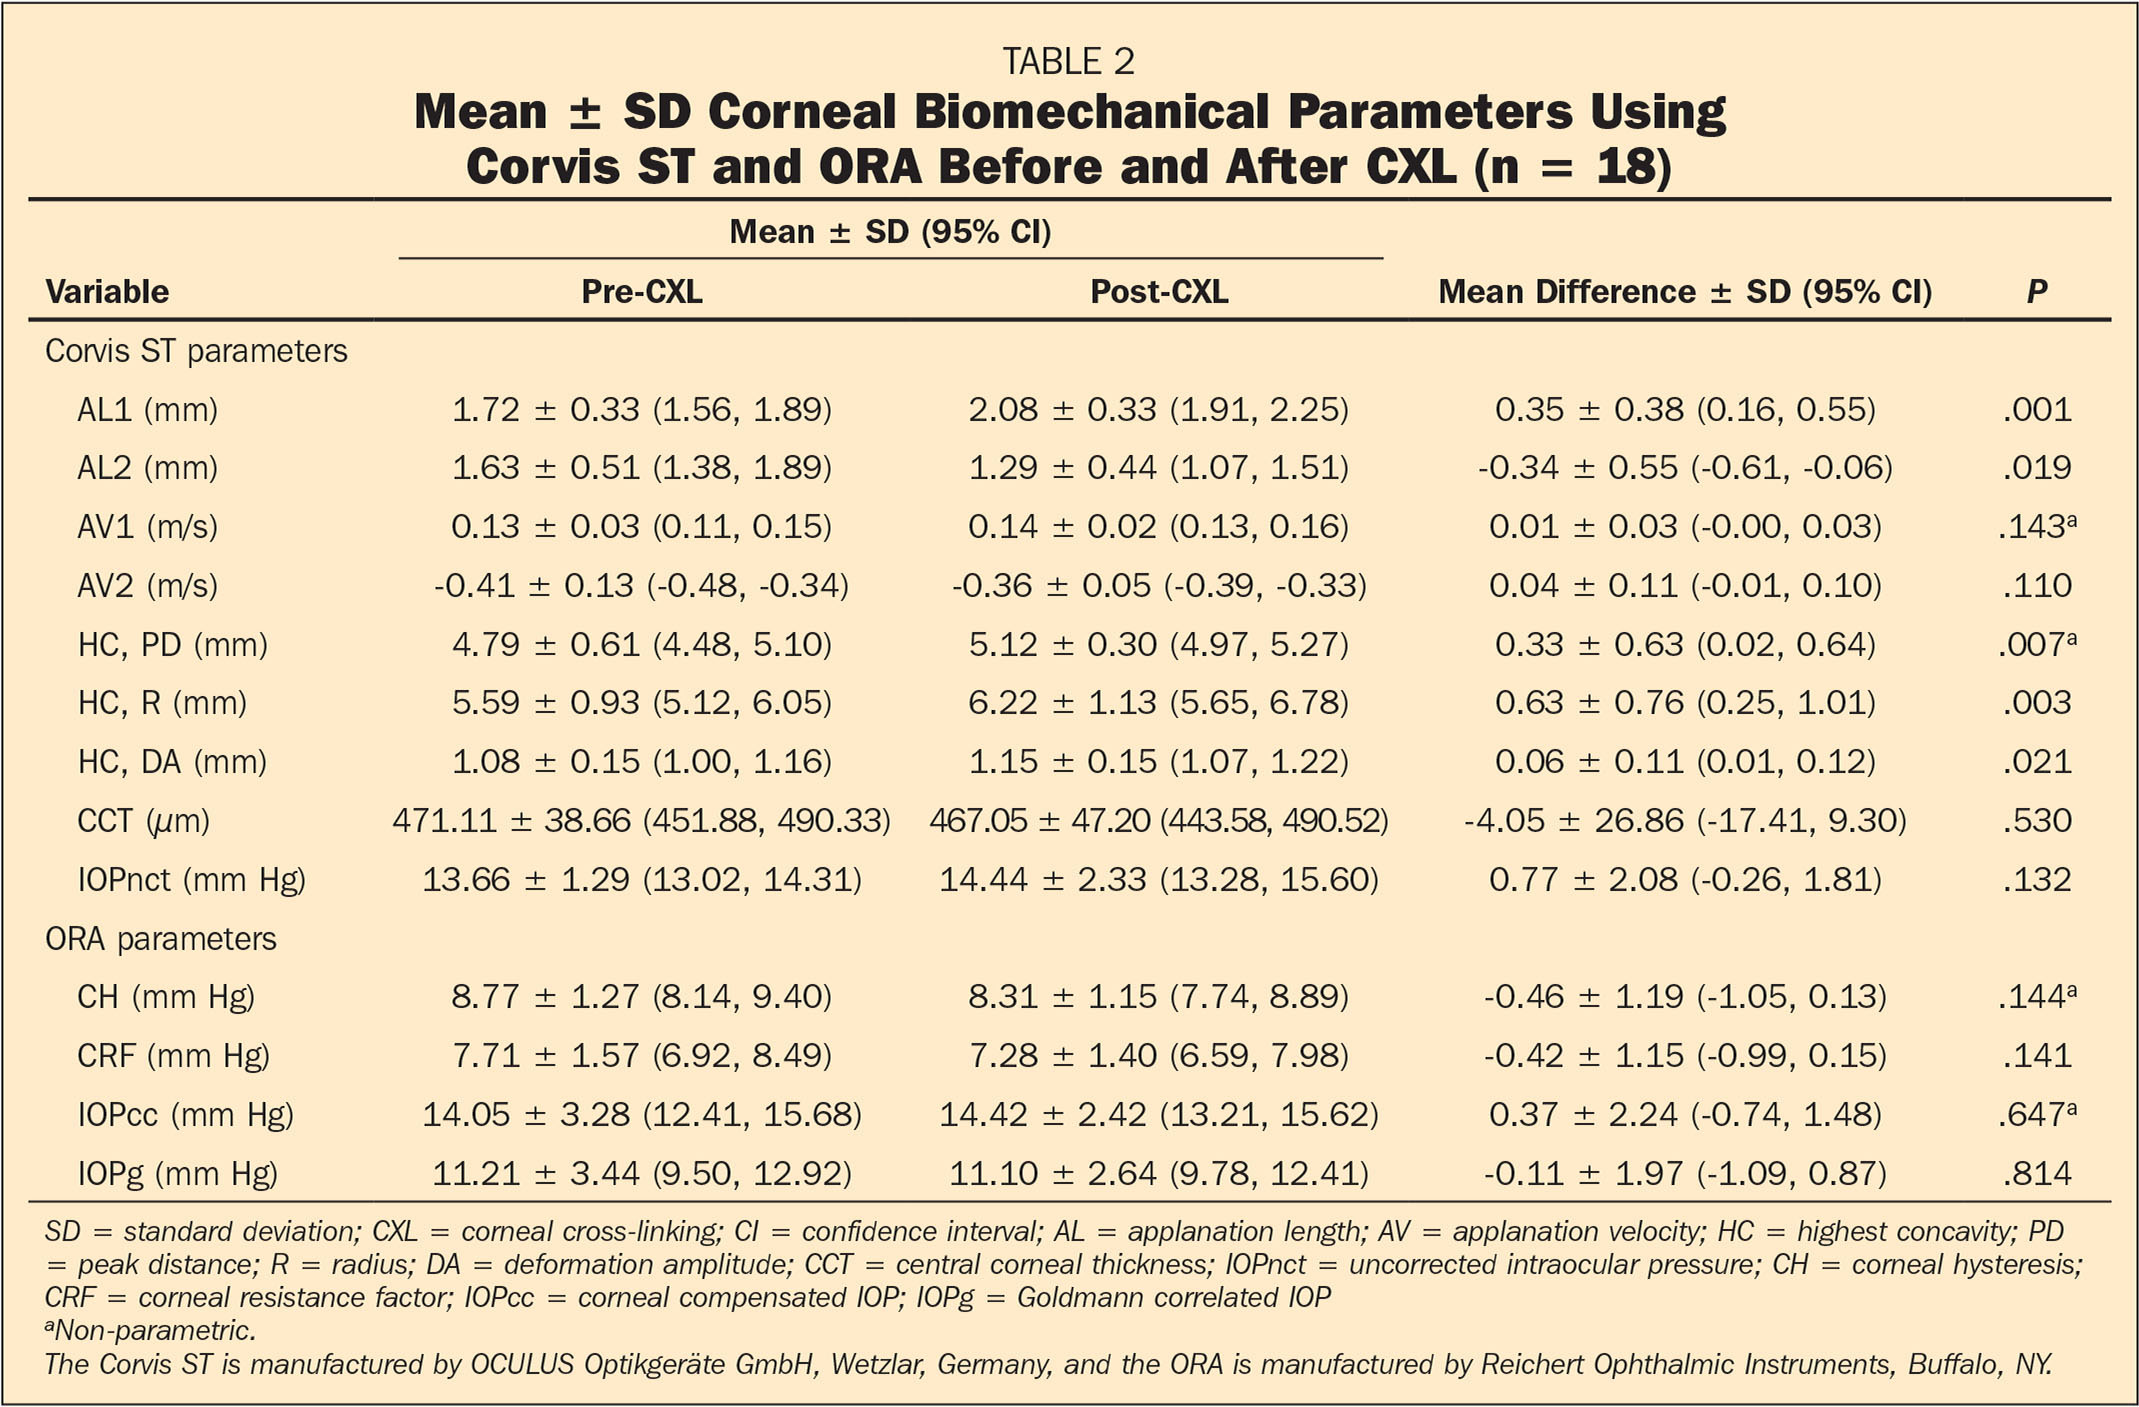 Mean ± SD Corneal Biomechanical Parameters Using Corvis ST and ORA Before and After CXL (n = 18)